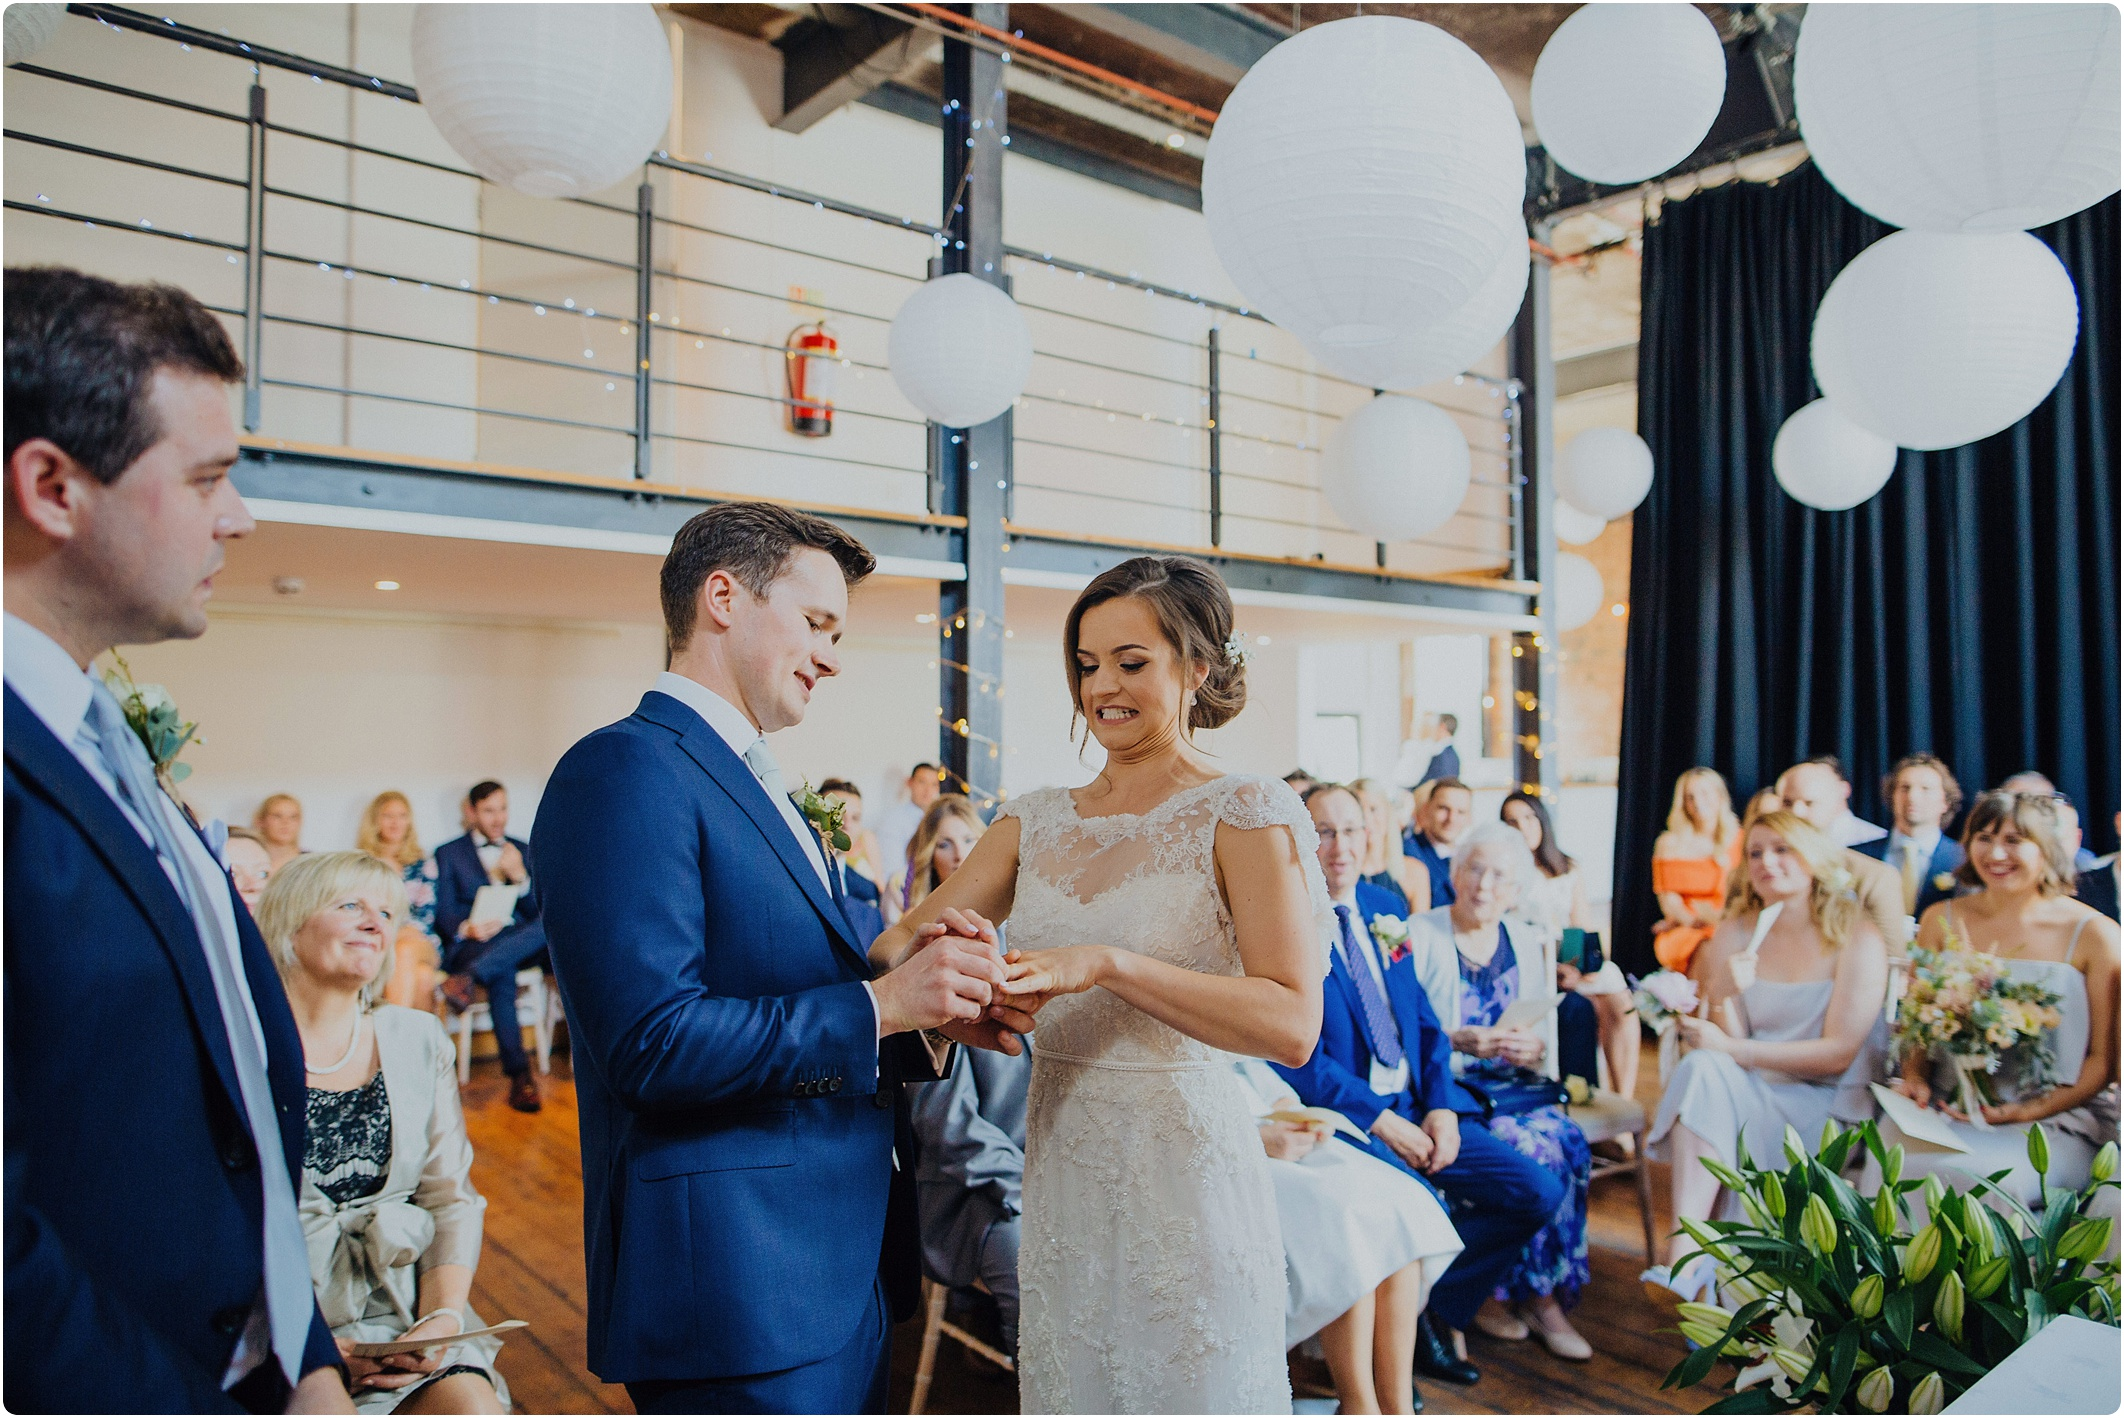 exchanging rings at The Paintworks Wedding